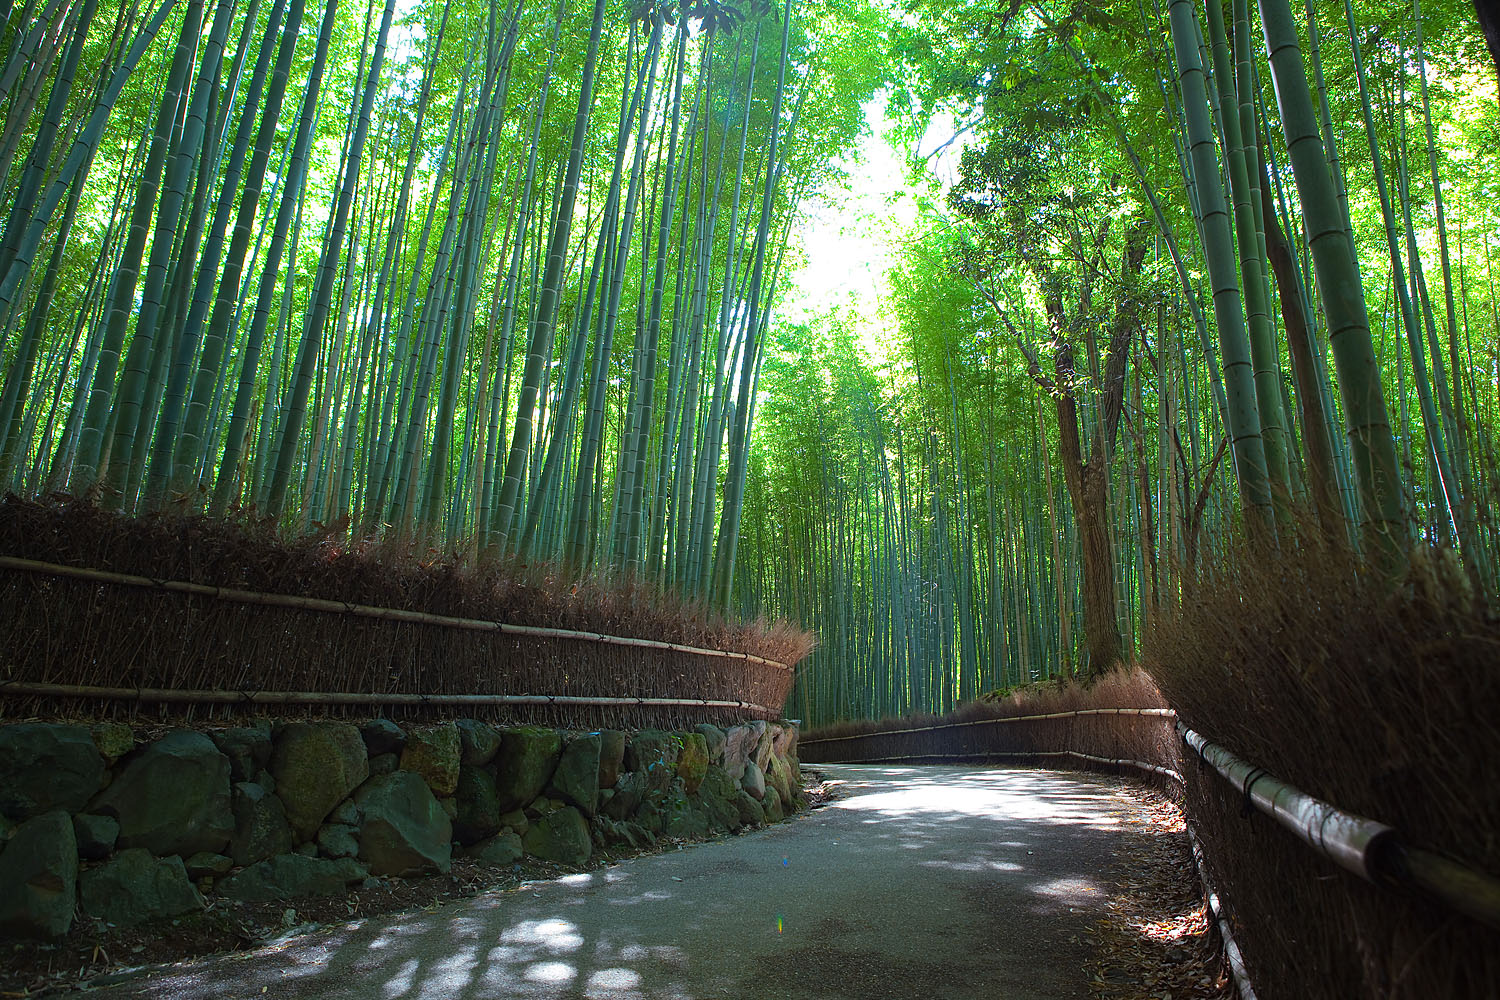 Sagano bamboo – beautiful tree